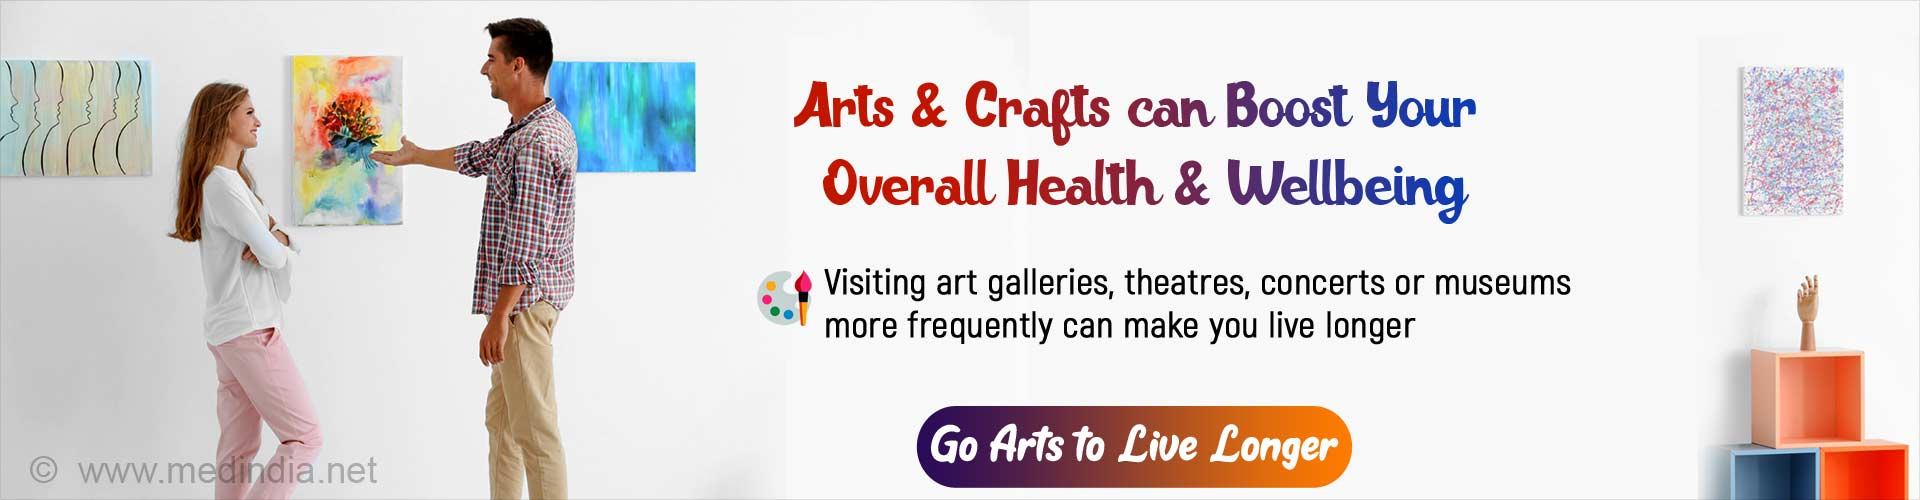 Arts & Crafts can Boost Your Overall Health & Well-being. Visiting art galleries, theaters, concerts or museum more frequently can make you live longer. Go Arts to Live Longer